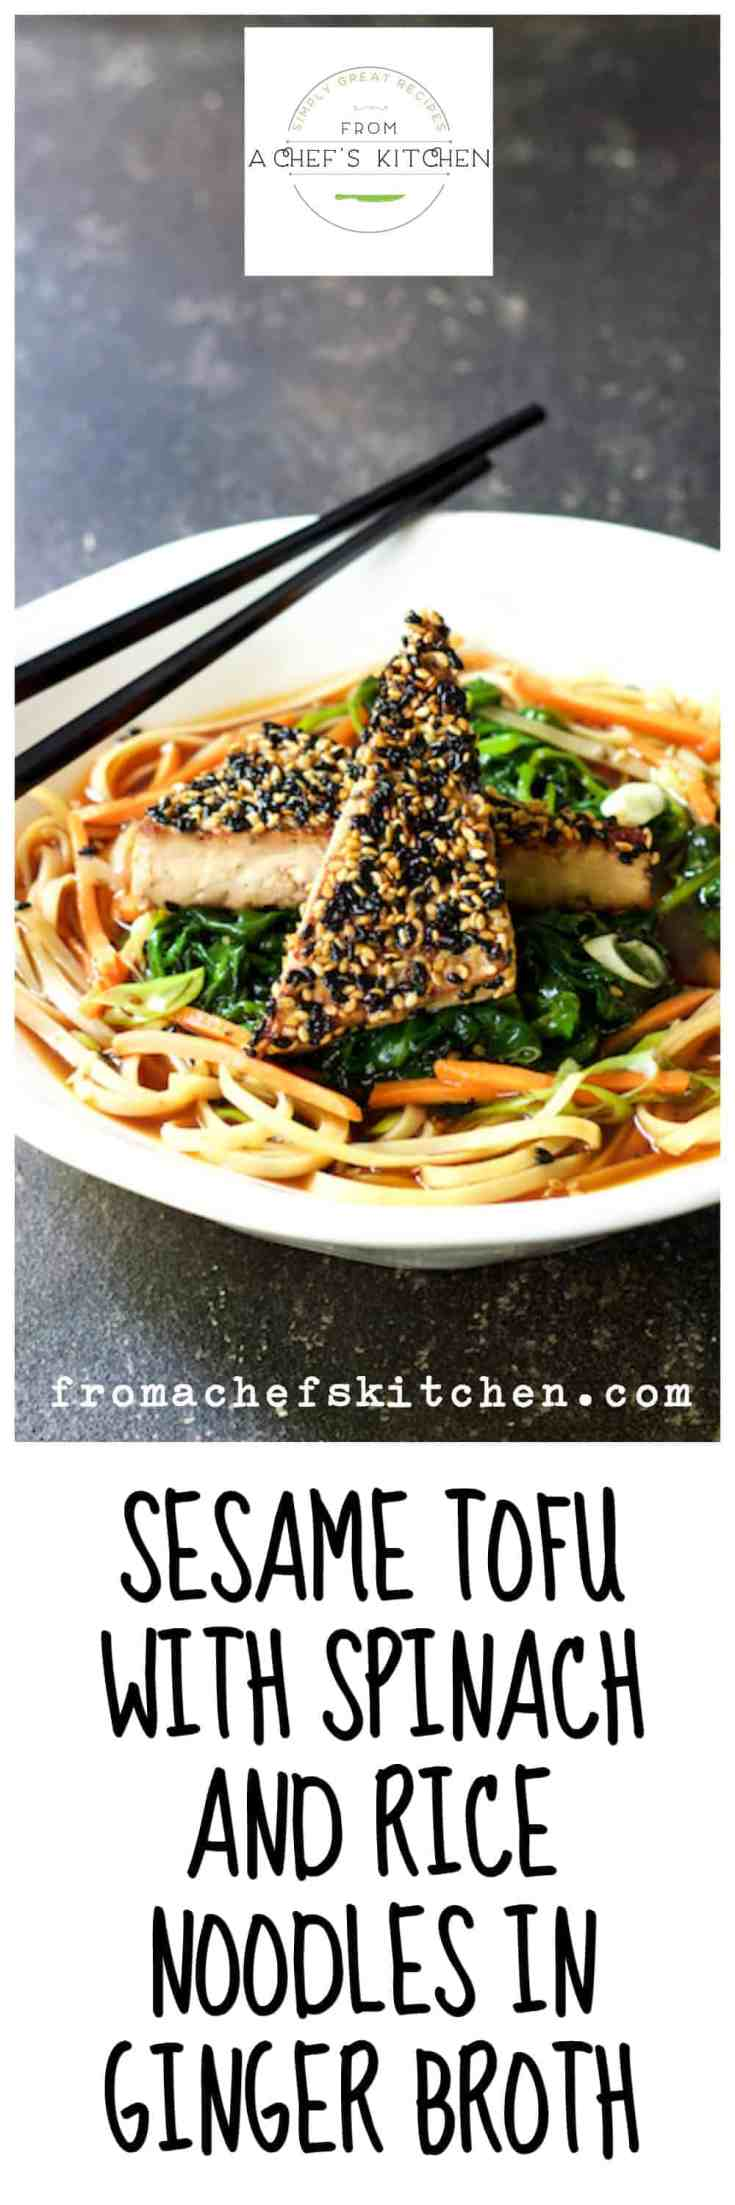 Sesame Tofu with Spinach and Rice Noodles in Ginger Broth is a beautiful Asian-inspired meatless meal even a carnivore can love! #tofu #vegan #vegetarian #Asian #Asianfood #Asianvegan